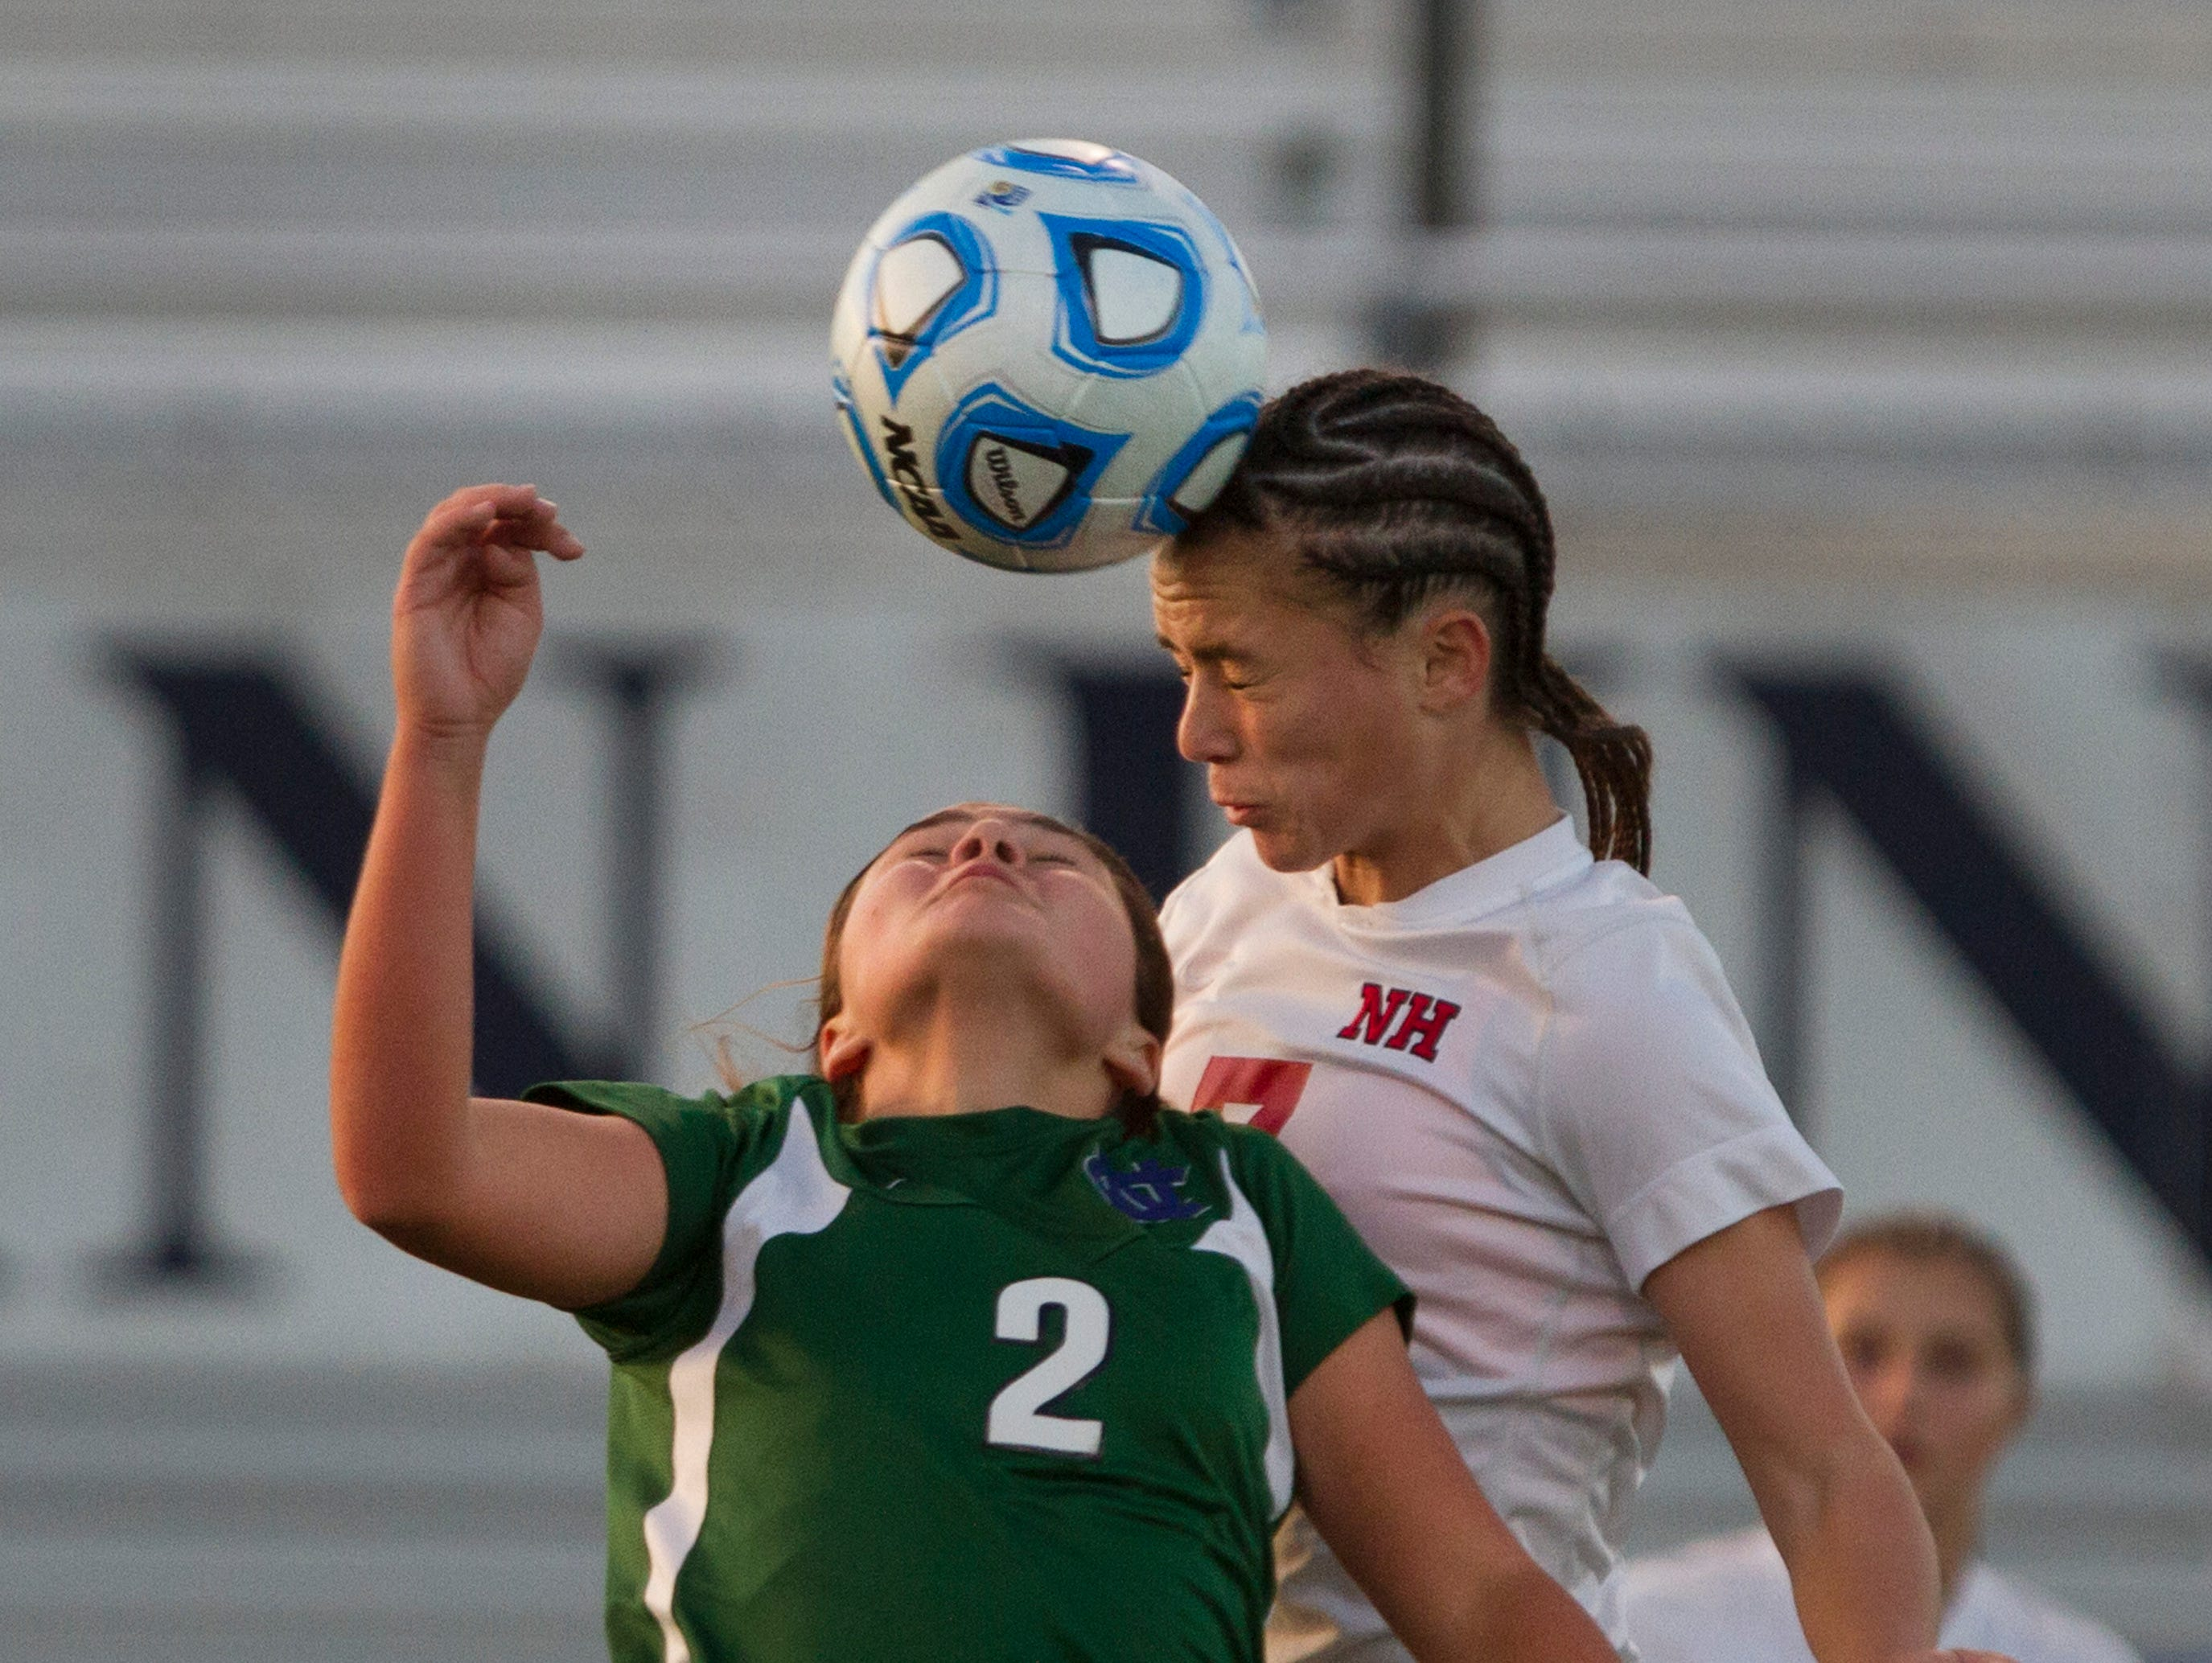 Colts Neck's battles for a Kristen Gambardella headball with Northern Hightlands Madison Kahn during second half action. Colt Necks Girls Soccer vs Northern Highlands in NJSIAA State Group III Championship at Kean University on November 21, 2015 in Union, NJ.